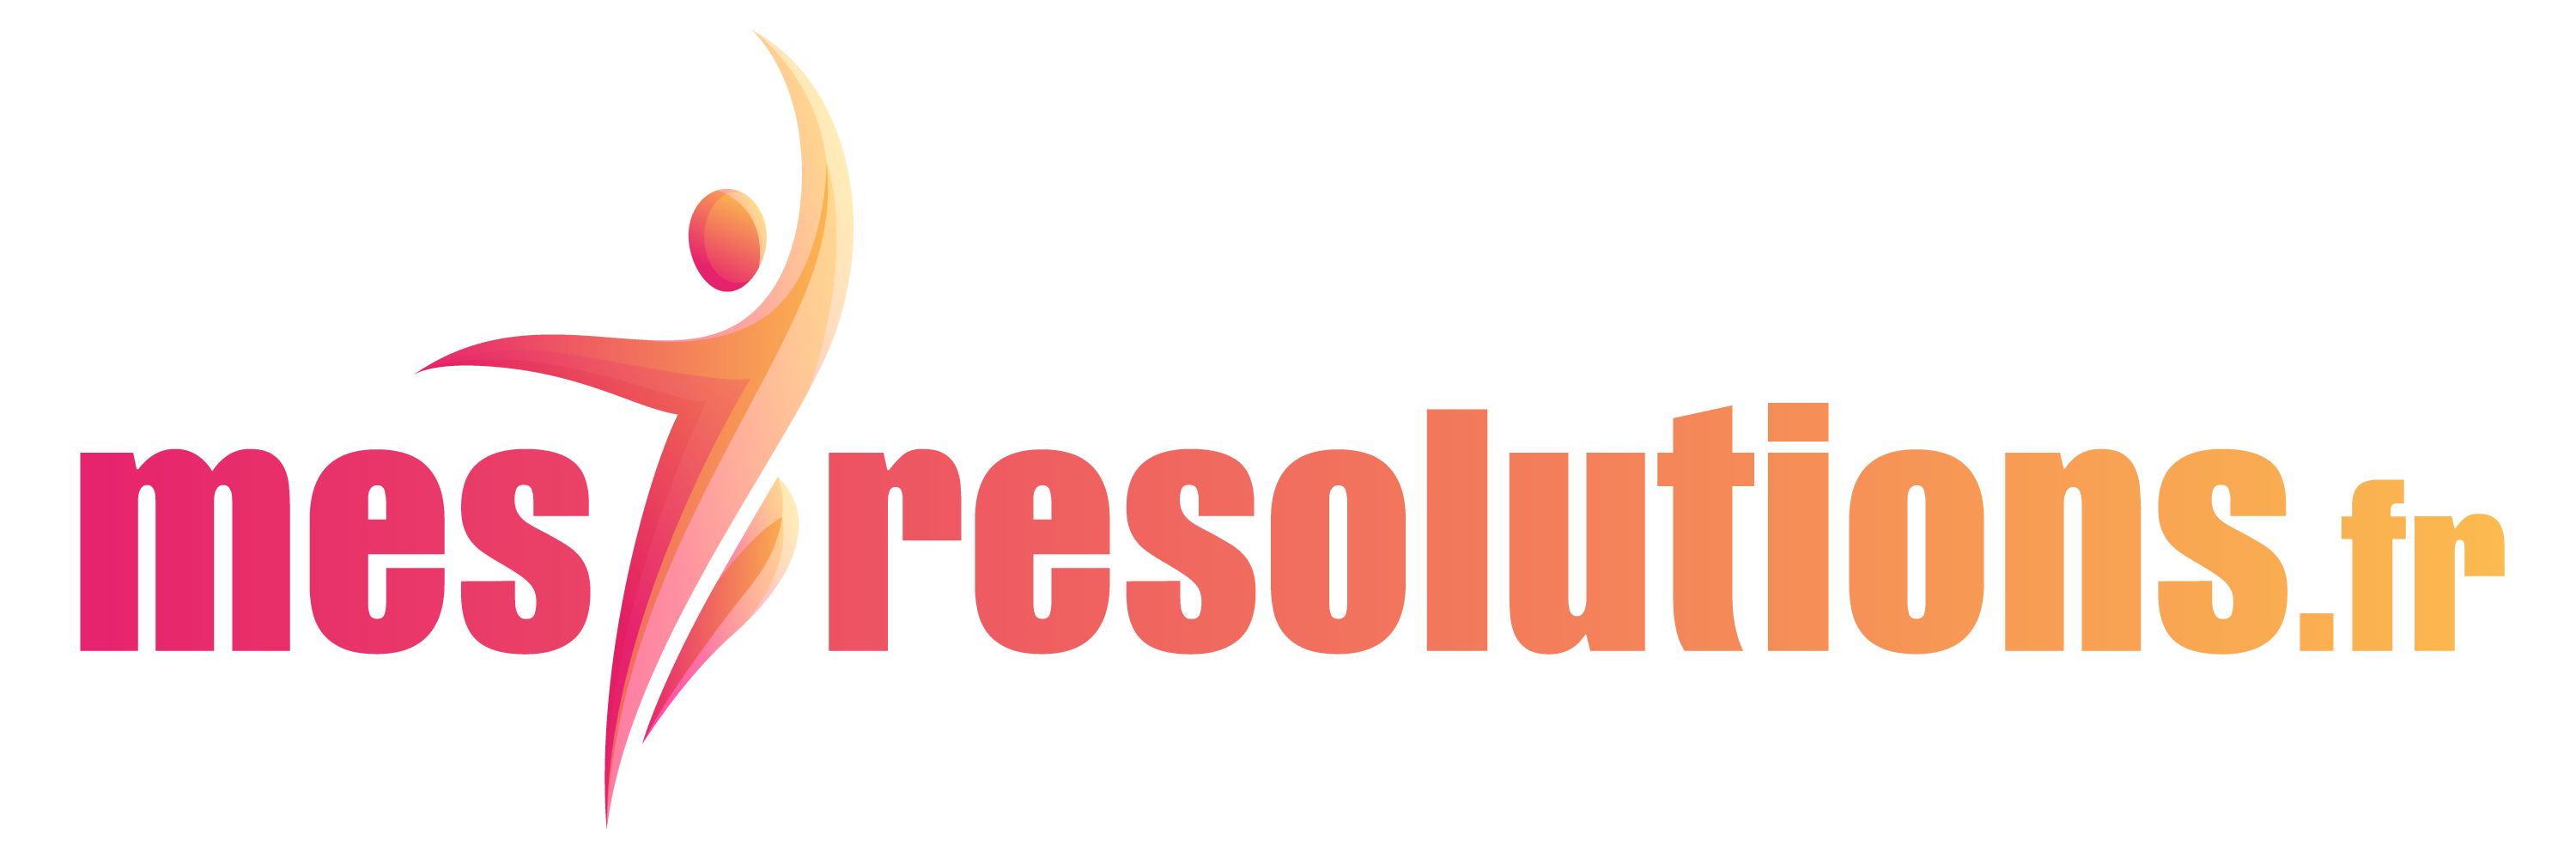 Mes resolutions logo